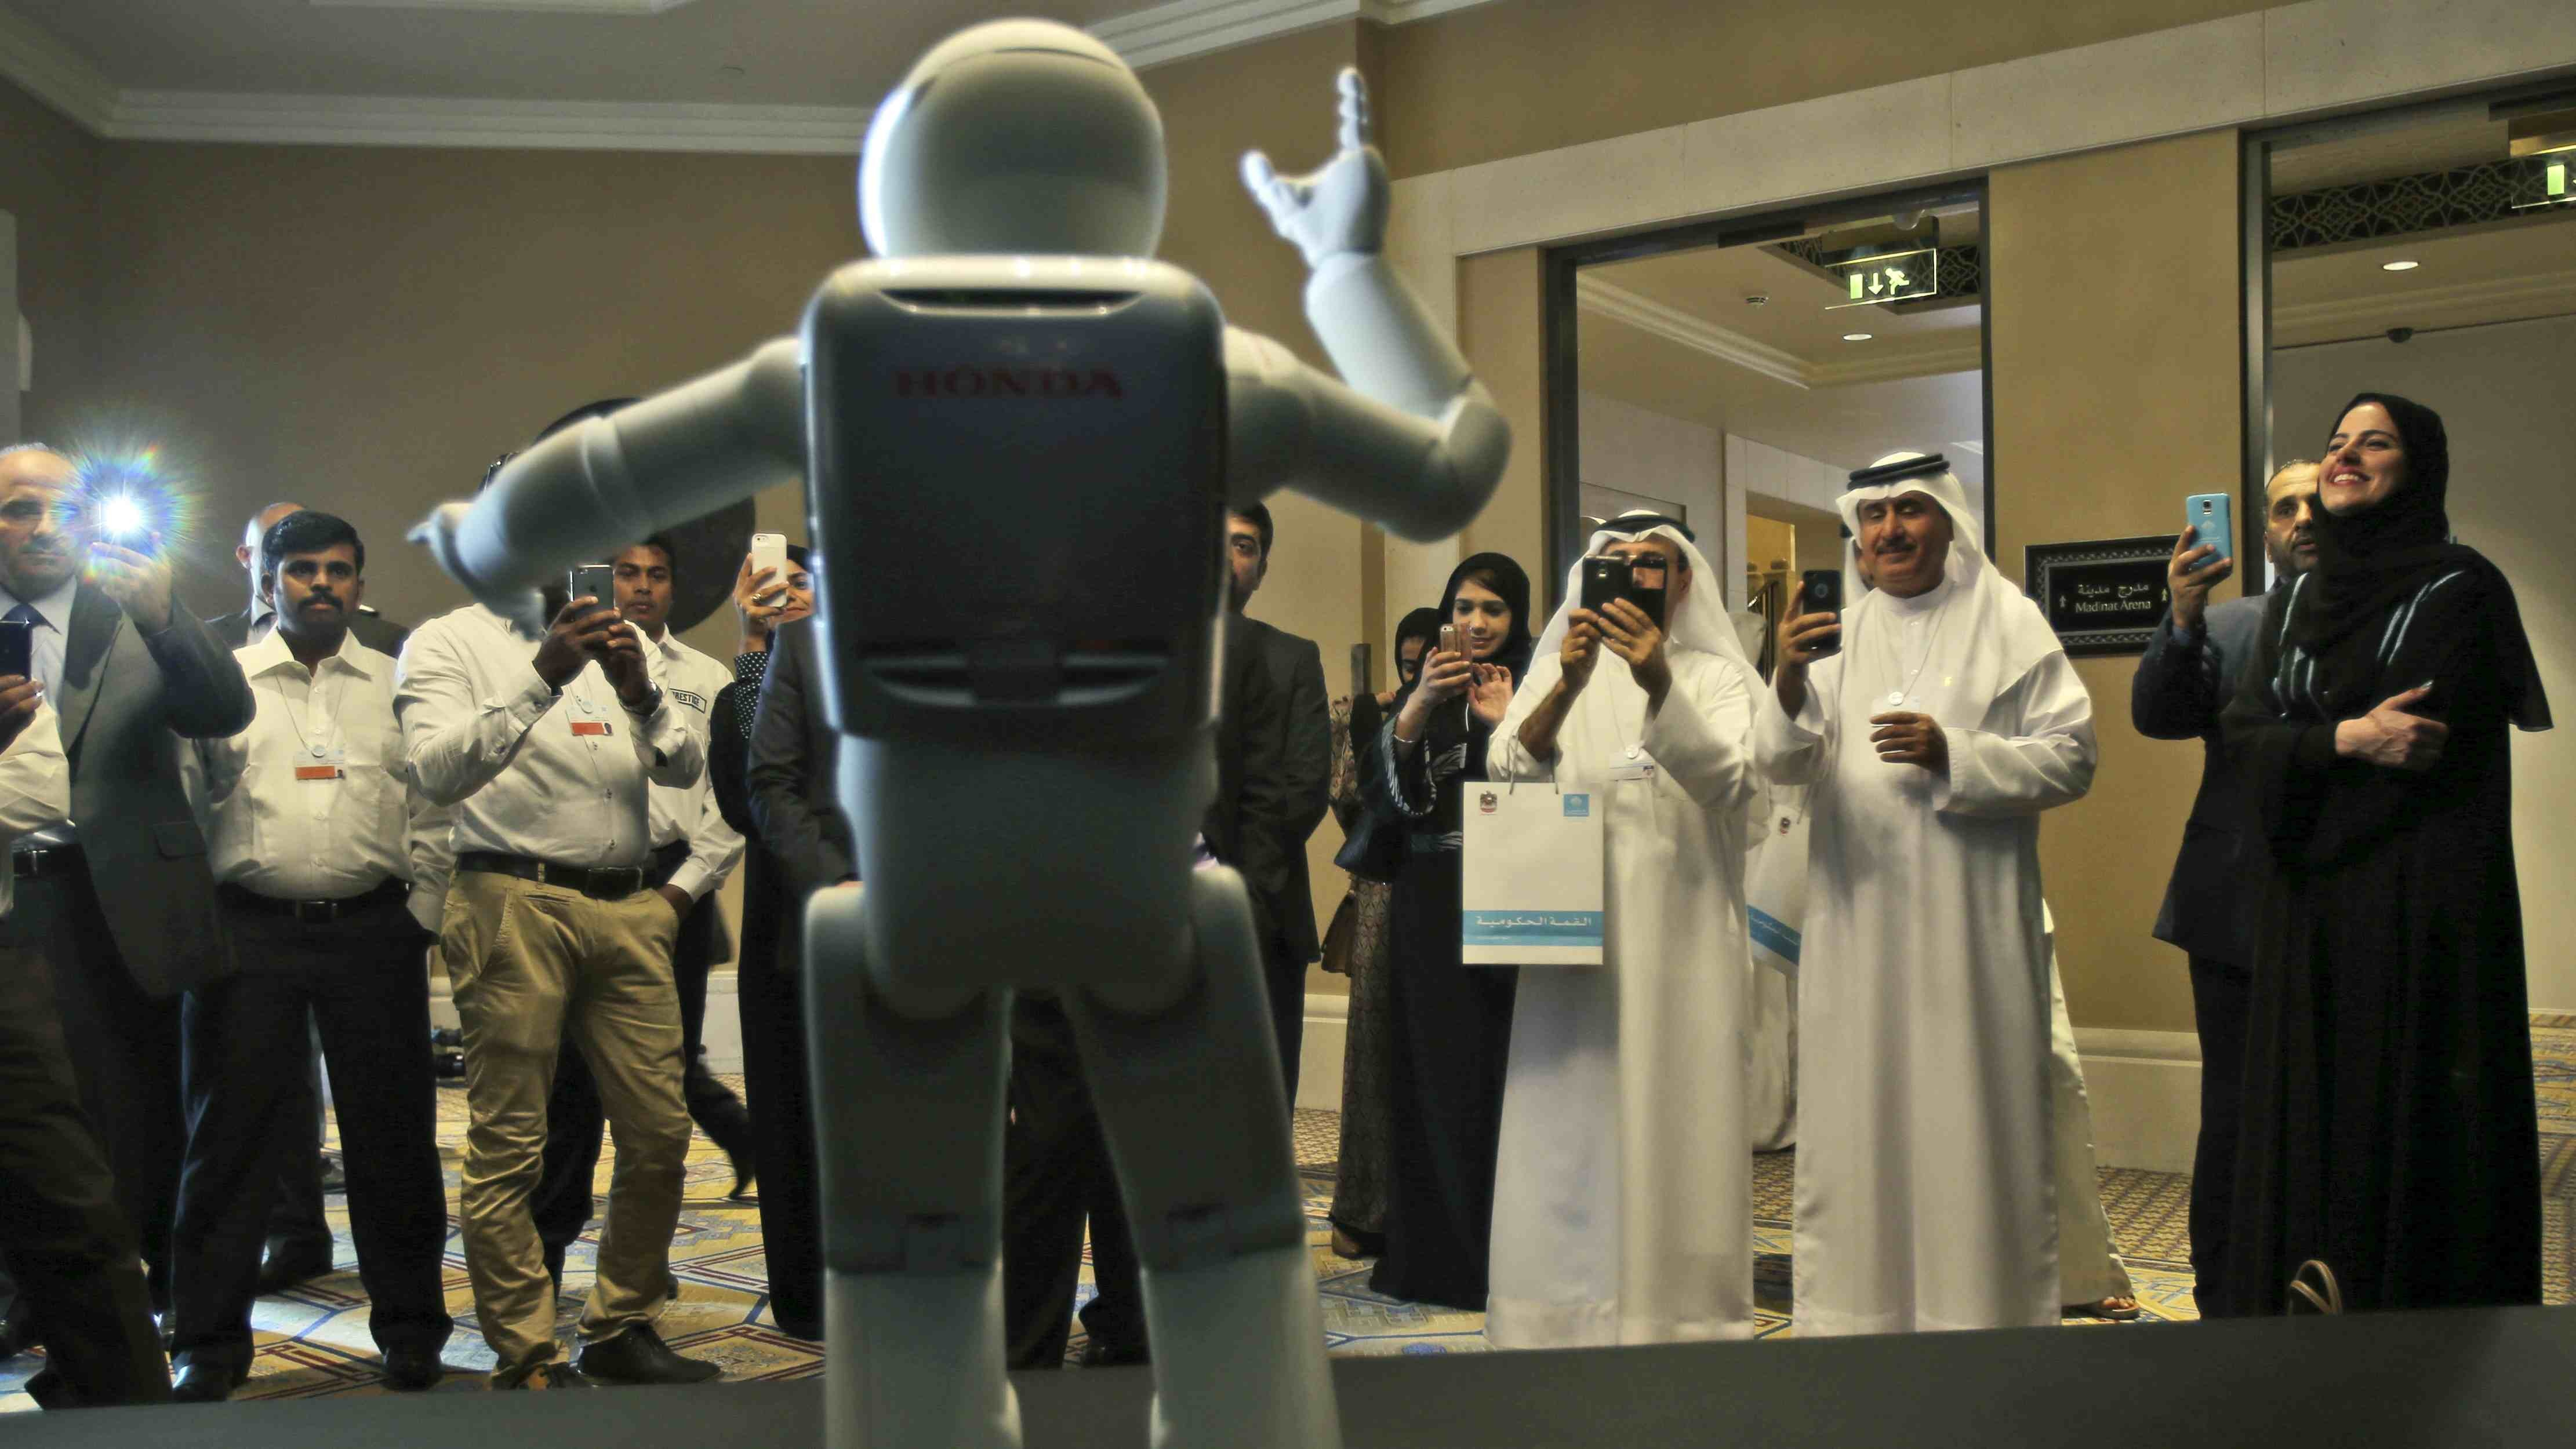 A humanoid robot designed and developed by Honda and named Asimo dances for the audience at the end of the company's  presentation during the last day of the Government Summit in Dubai, United Arab Emirates, Wednesday, Feb. 11, 2015. (AP Photo/Kamran Jebreili)